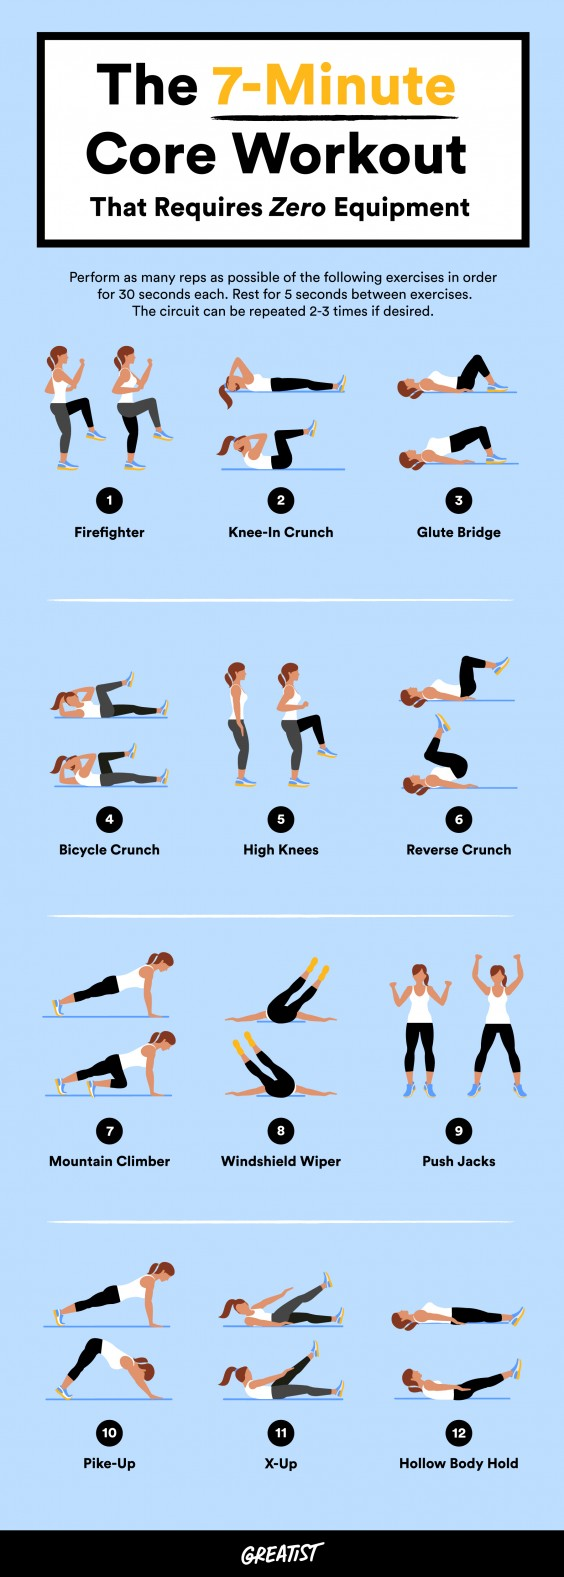 8 Minute Abs Level 1 : minute, level, 7-Minute, Quick, Workout, Without, Equipment